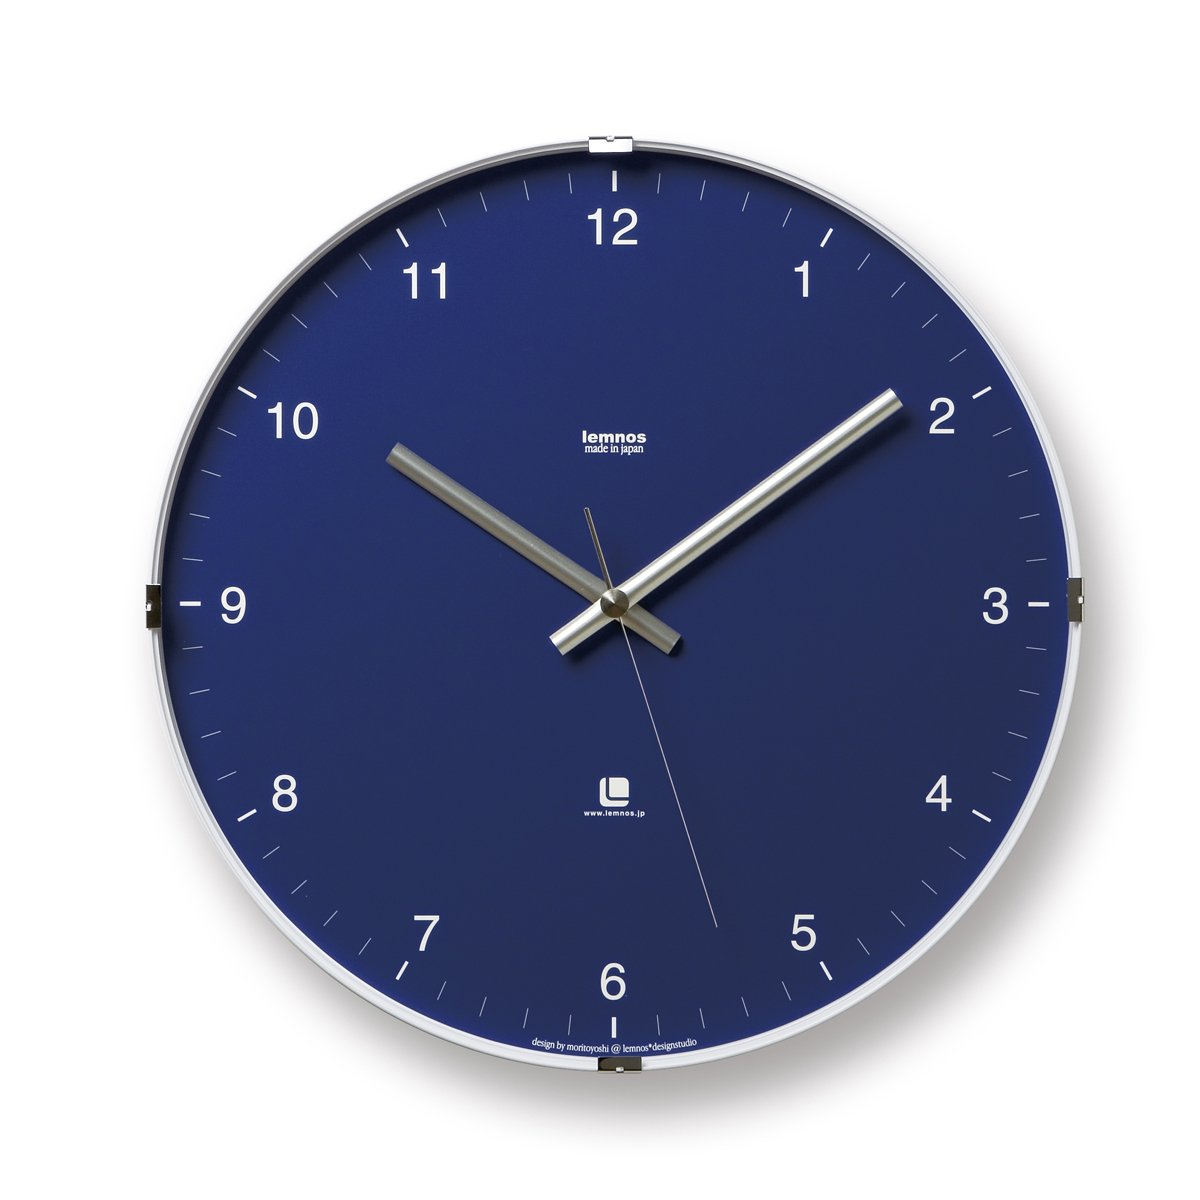 Lemnos north t1 0117 large wall clock in japanese style with clear lemnos north t1 0117 large wall clock in japanese style with clear clock face blue amazon kitchen home amipublicfo Image collections